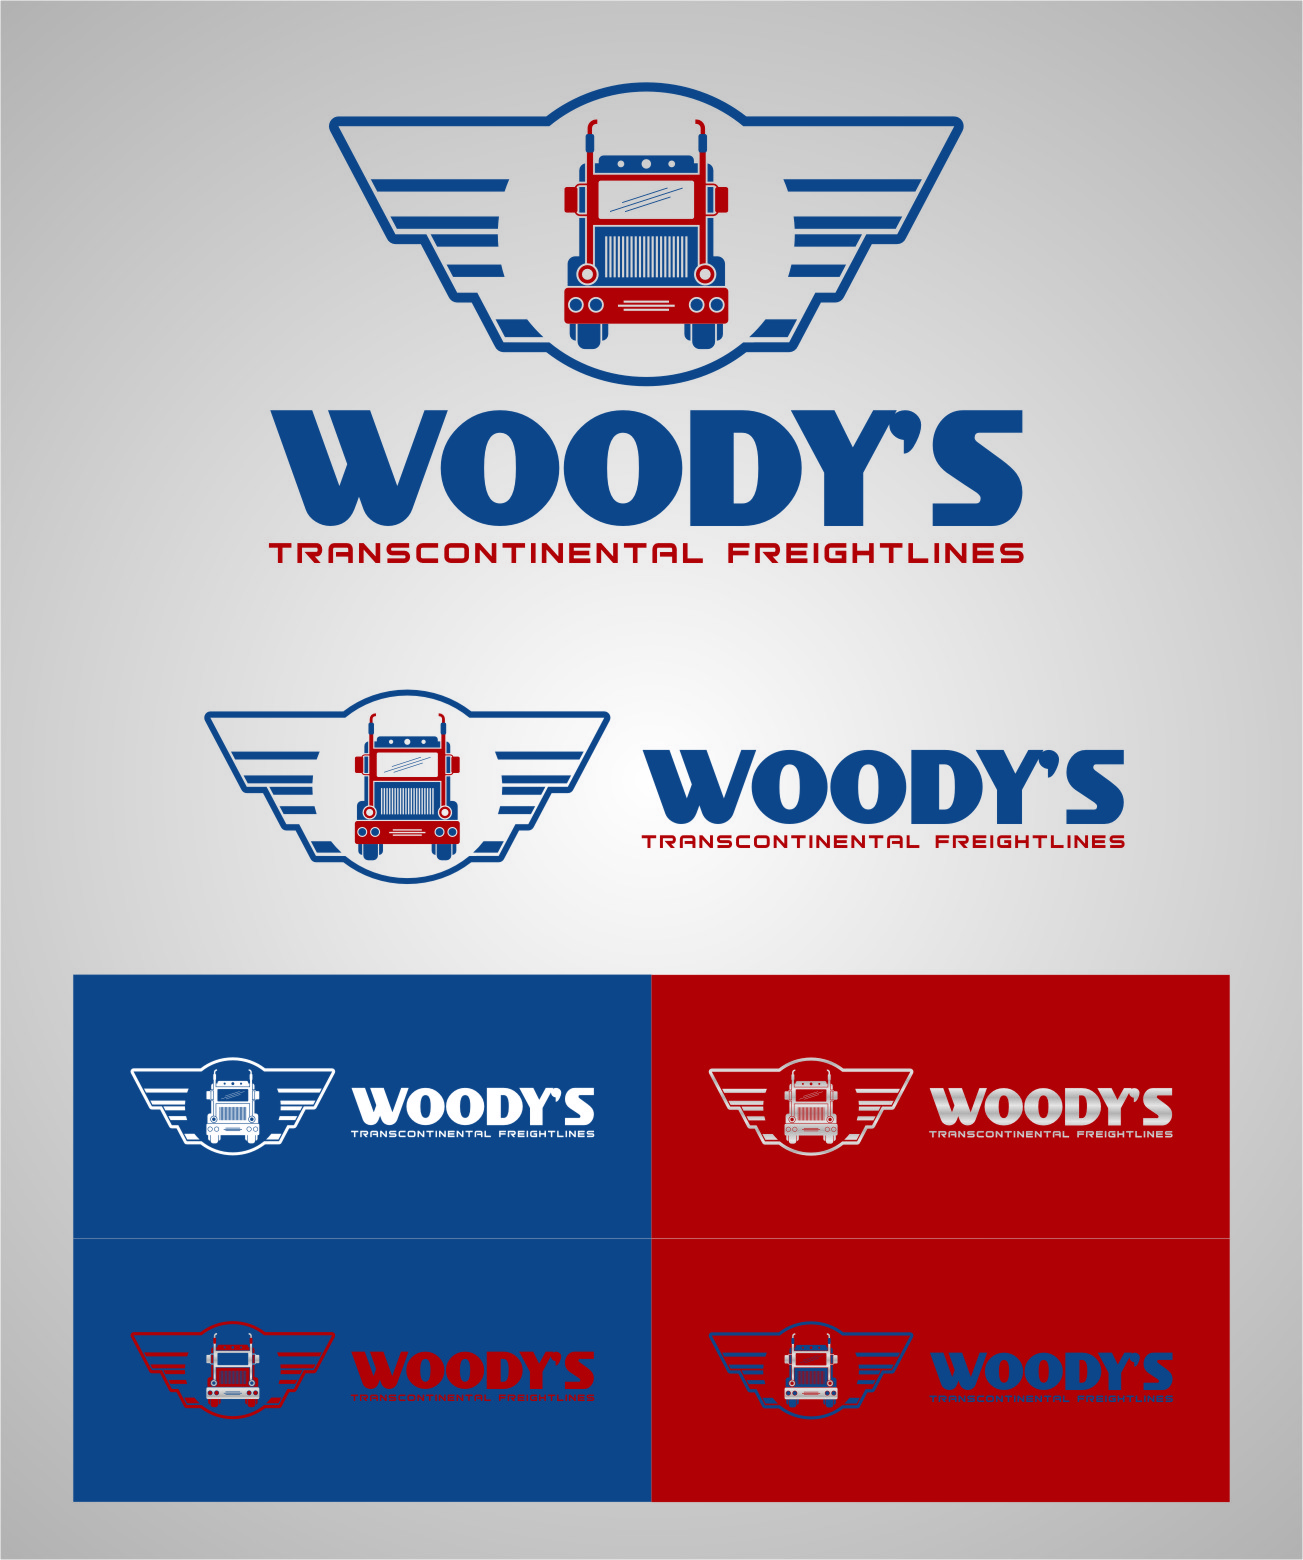 Logo Design by Ngepet_art - Entry No. 71 in the Logo Design Contest Creative Logo Design for Woody's Transcontinental Freightlines.